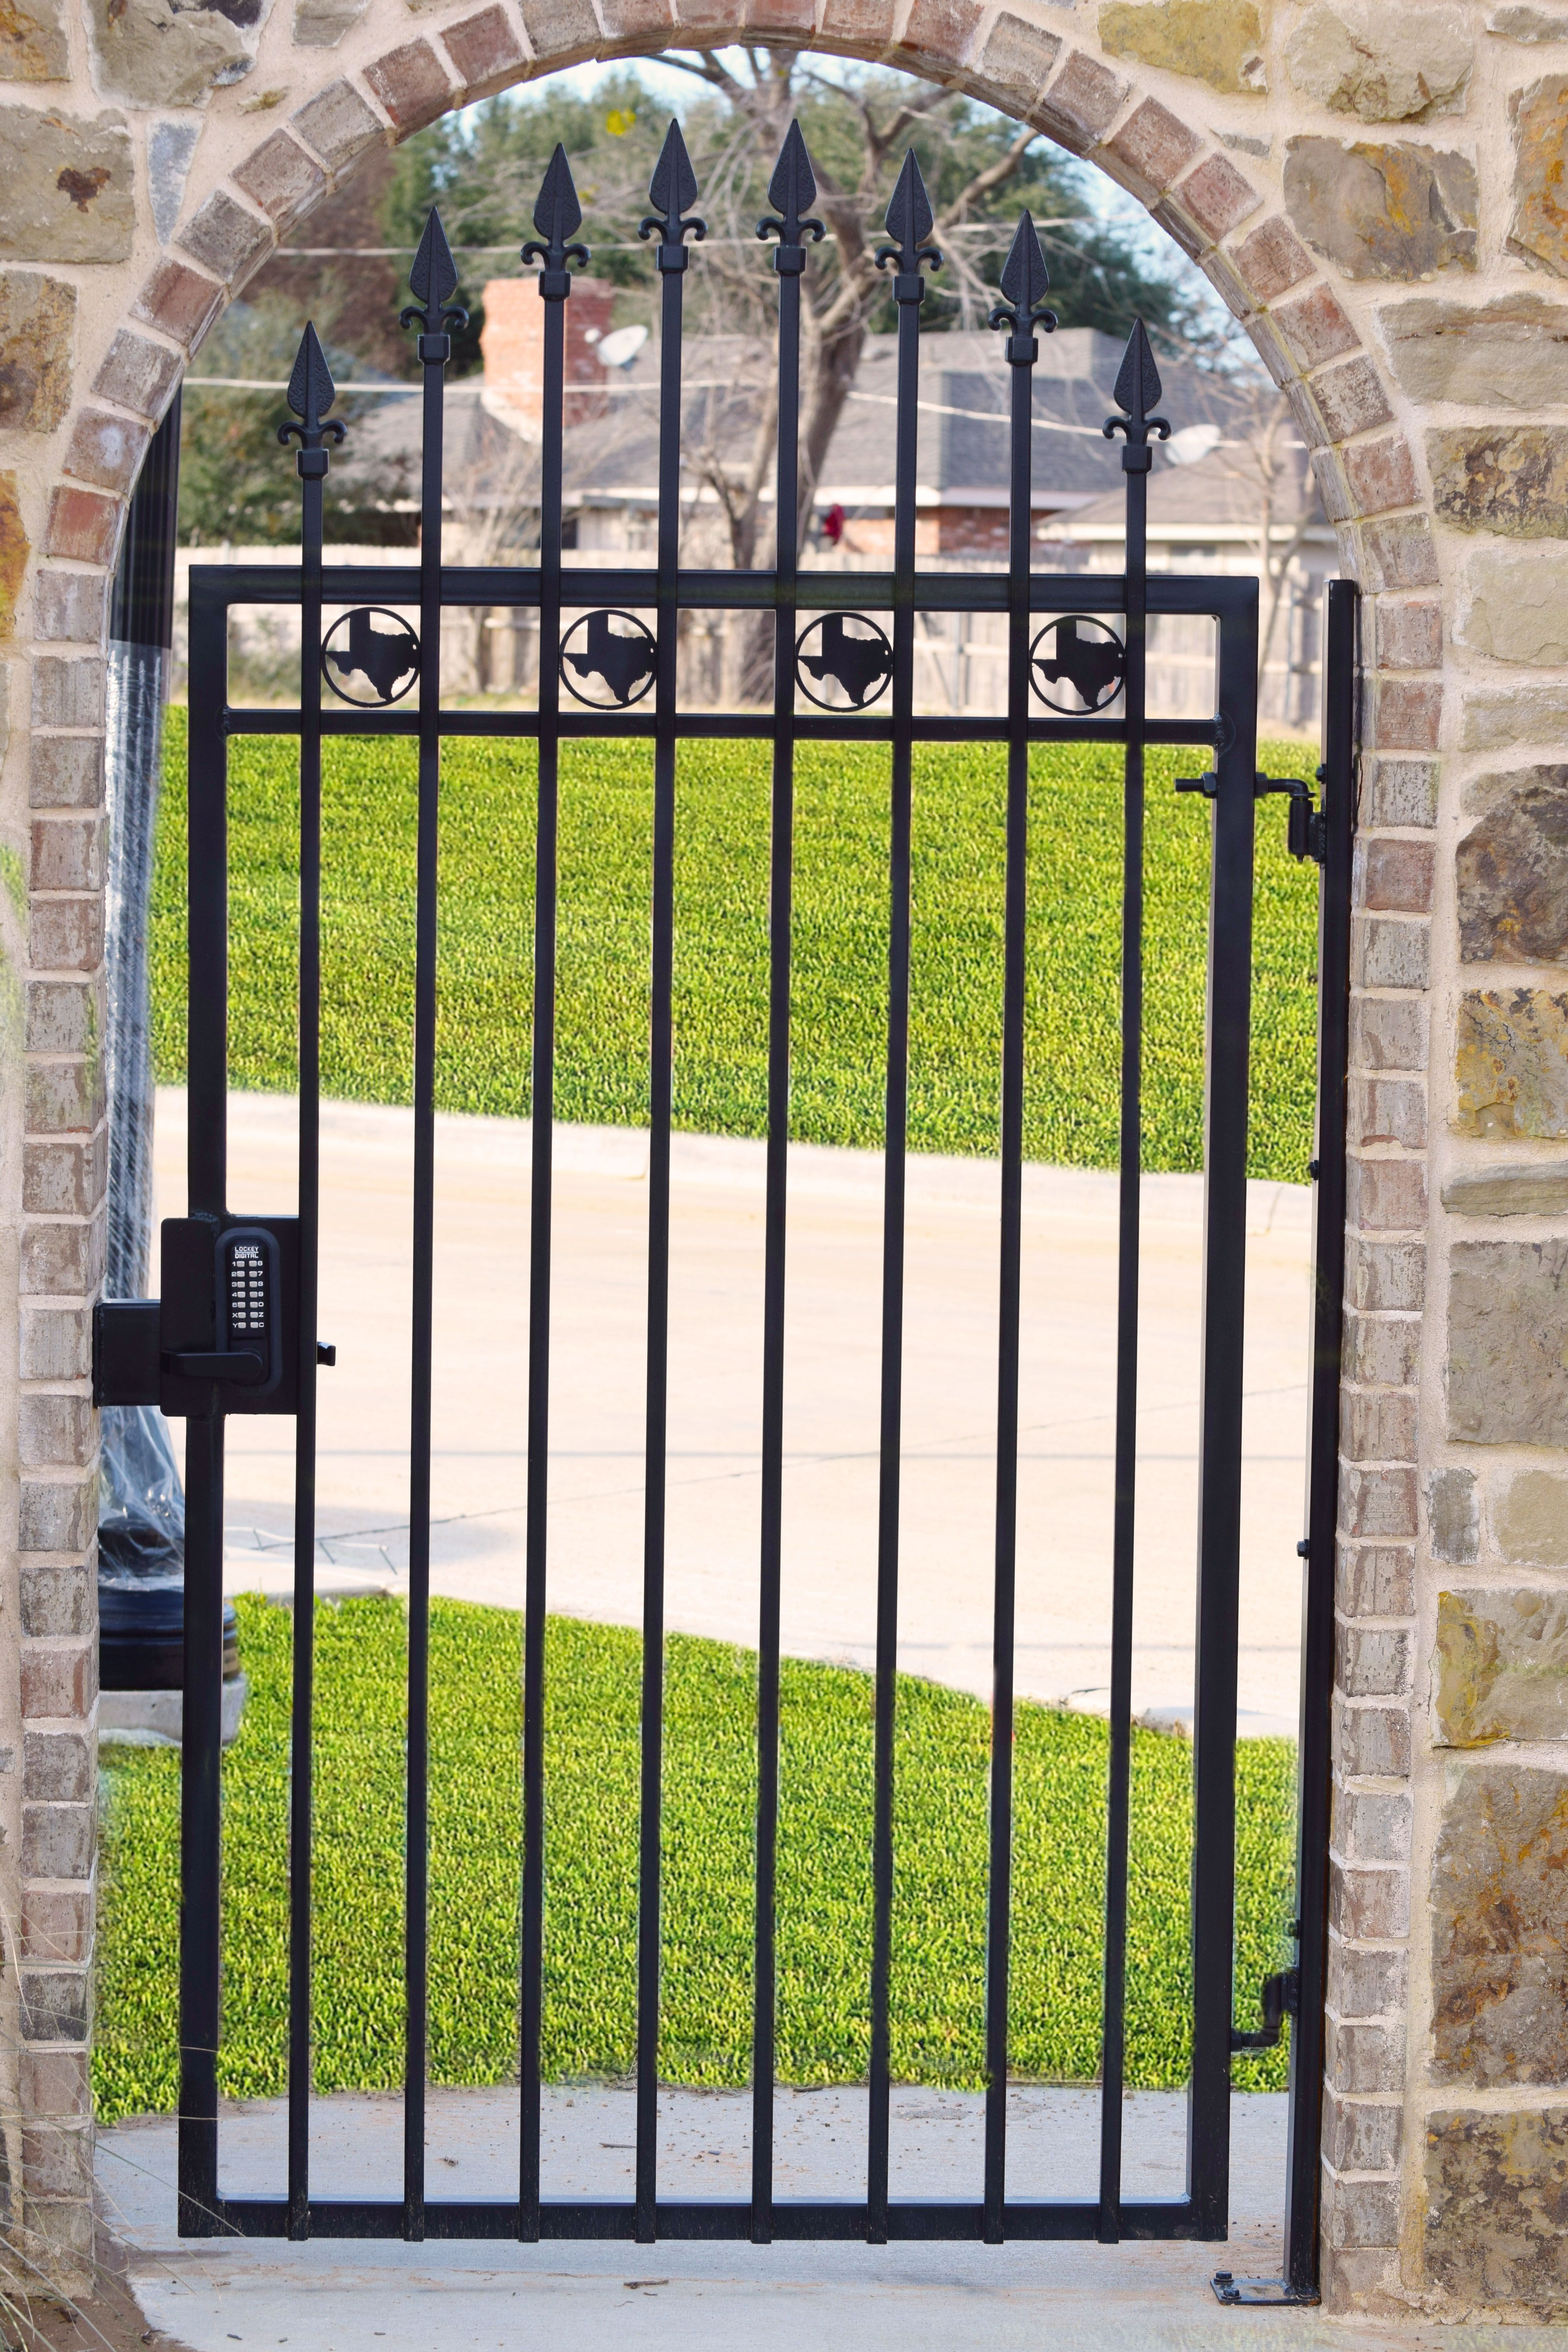 Check Out This Awesome Entry Gate You Can Get All The Components In One Stop At King Metals Finials 45 270 58 Lockey Digital Hardscape Gate Hinges Entry Gates